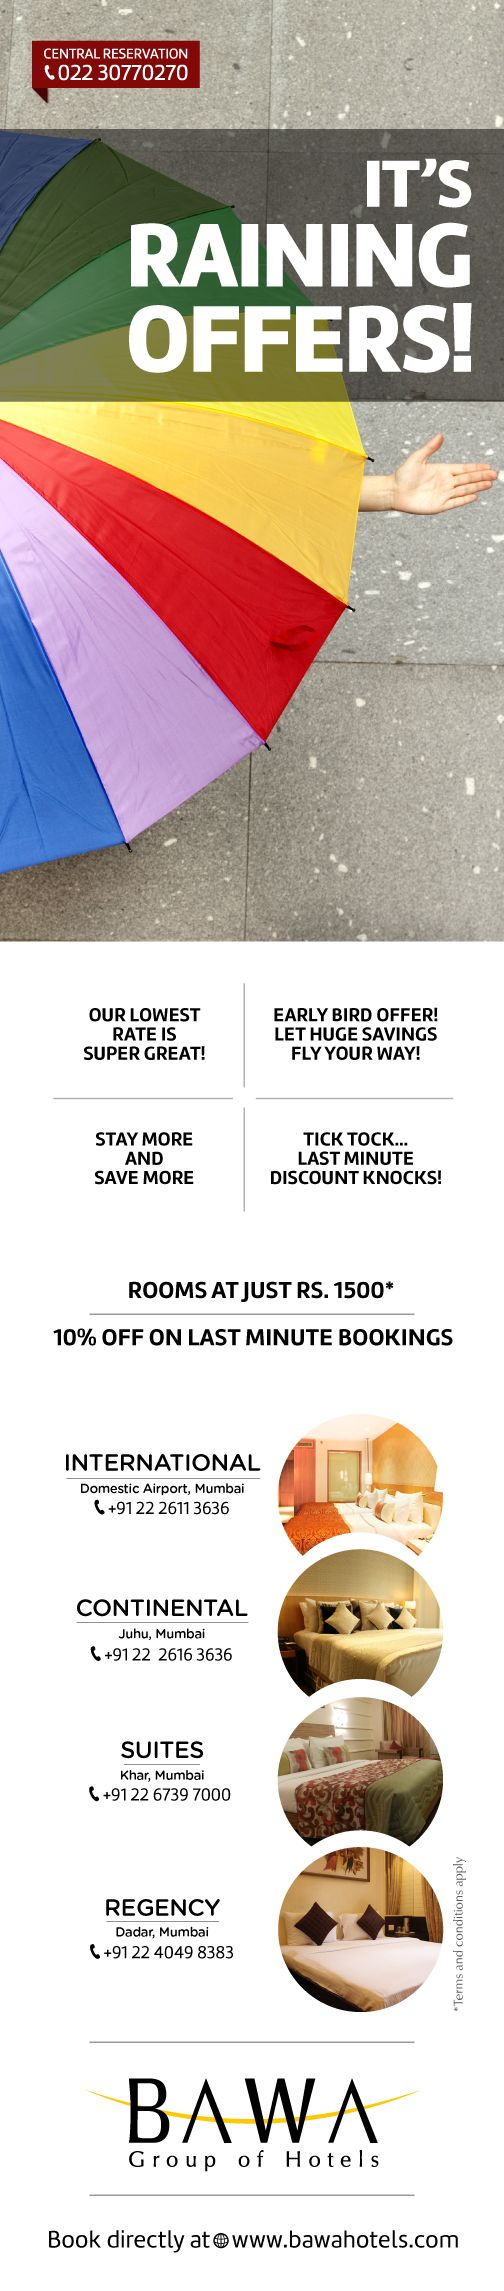 Get the best offers at all Bawa Hotels this monsoon.